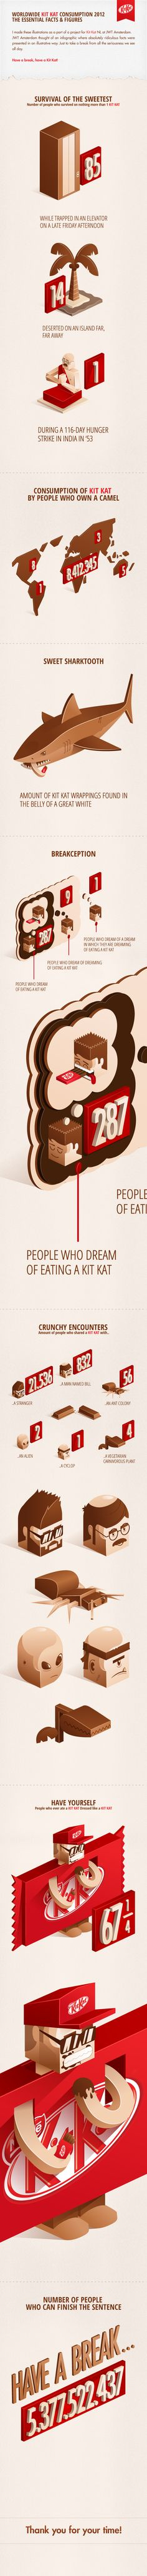 KIT KAT infographic 2012 by REFRESHH